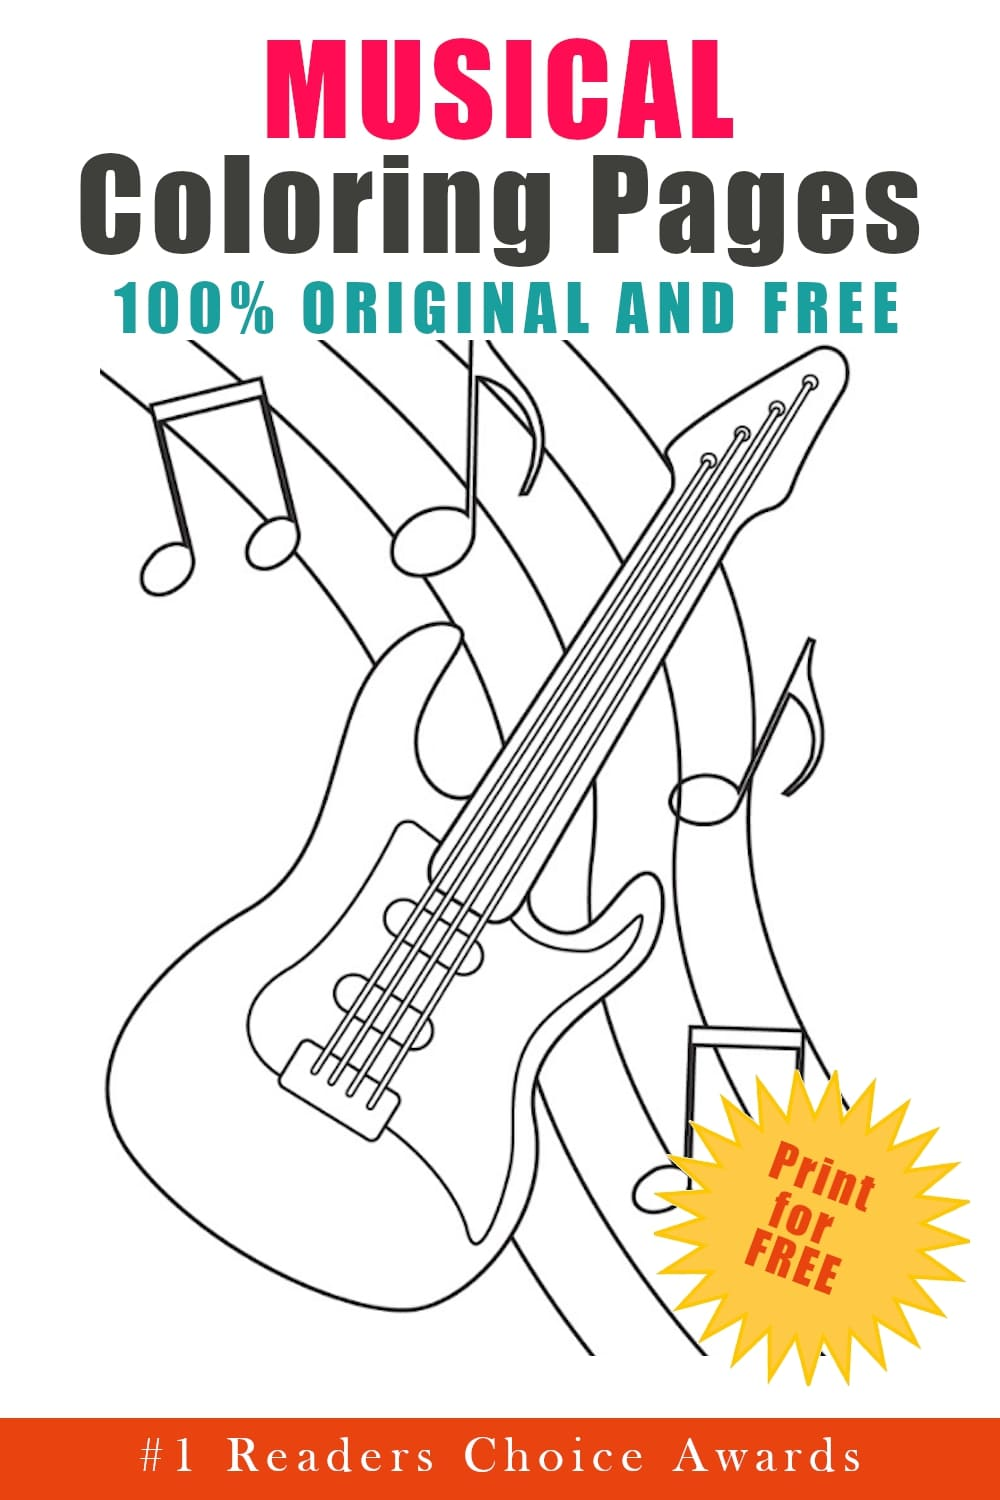 original and free music coloring pages